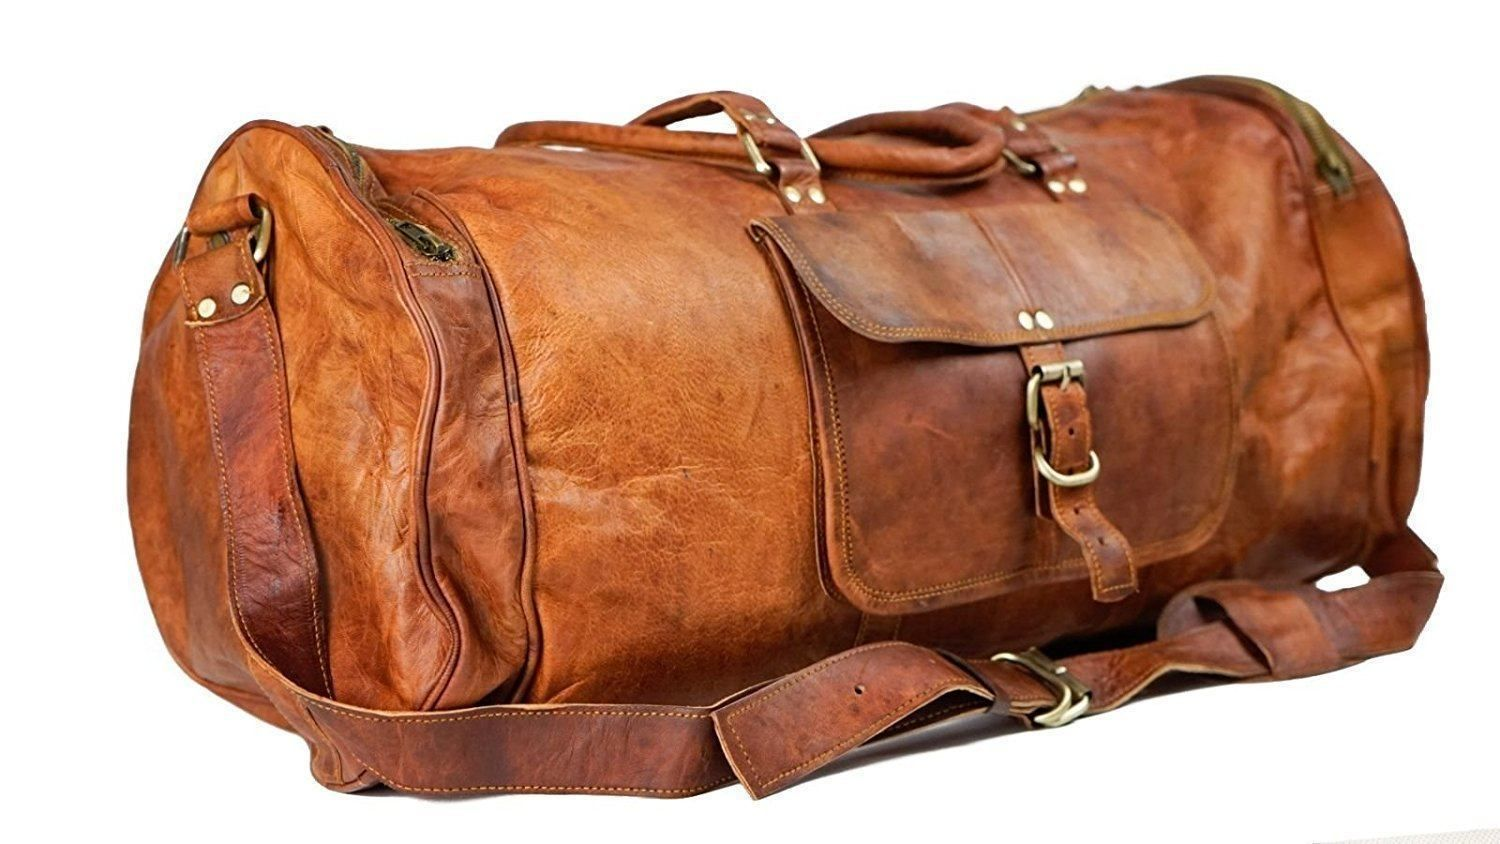 Men/'s Unisex Vintage Lightweight Leather Cowhide Travel Luggage Duffel Gym Bags